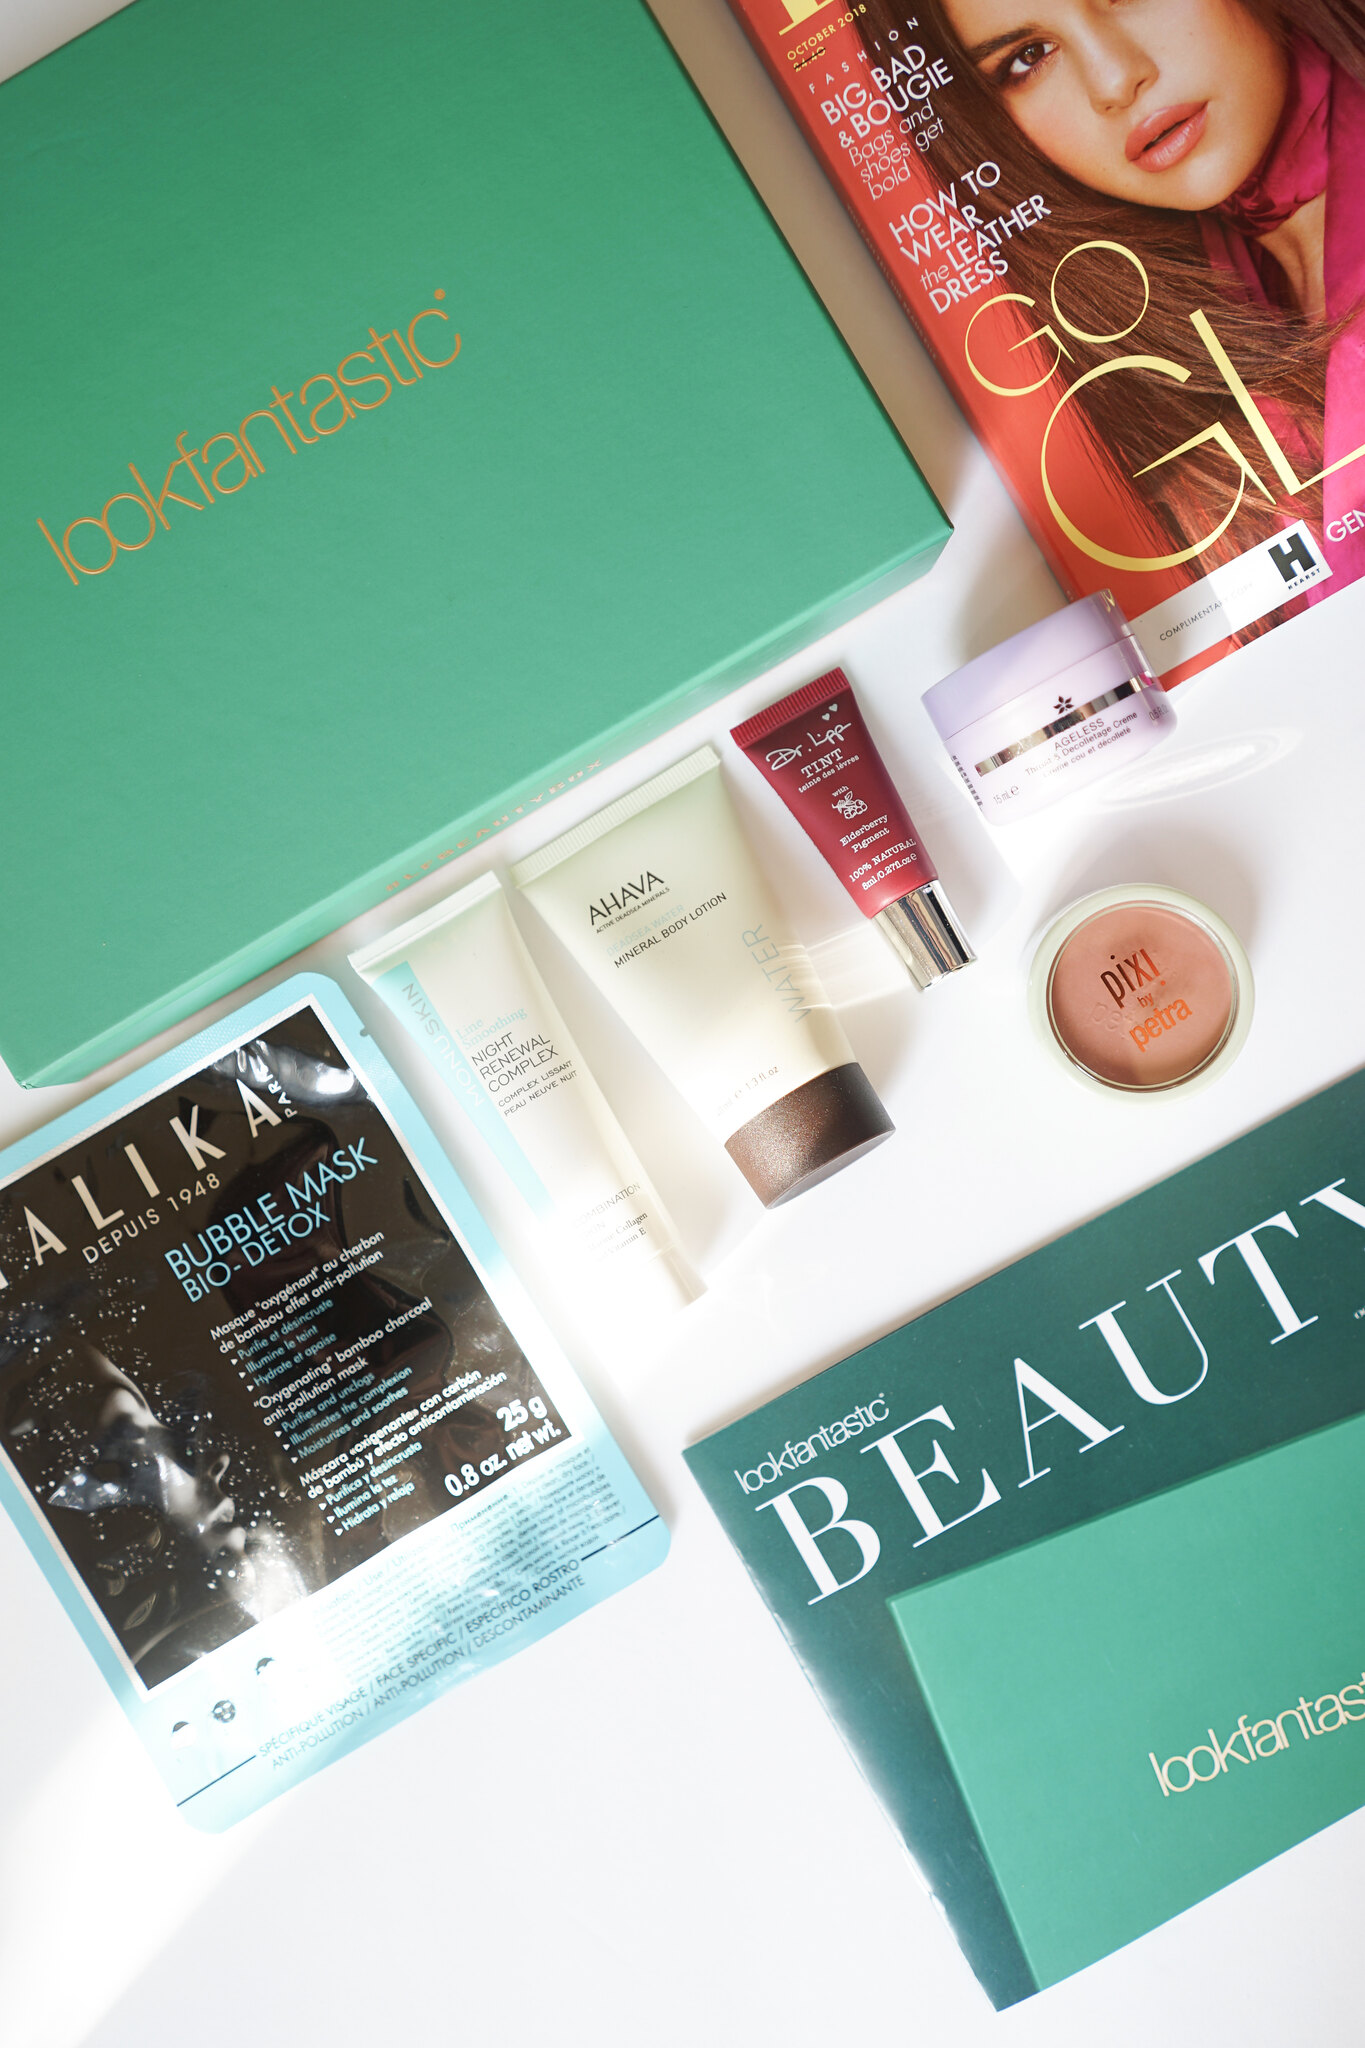 lfbeautybox, Lookfantastic, beauty box, luxury skincare, make up, Bbloggers. beauty blogger, mom blogger, mom style